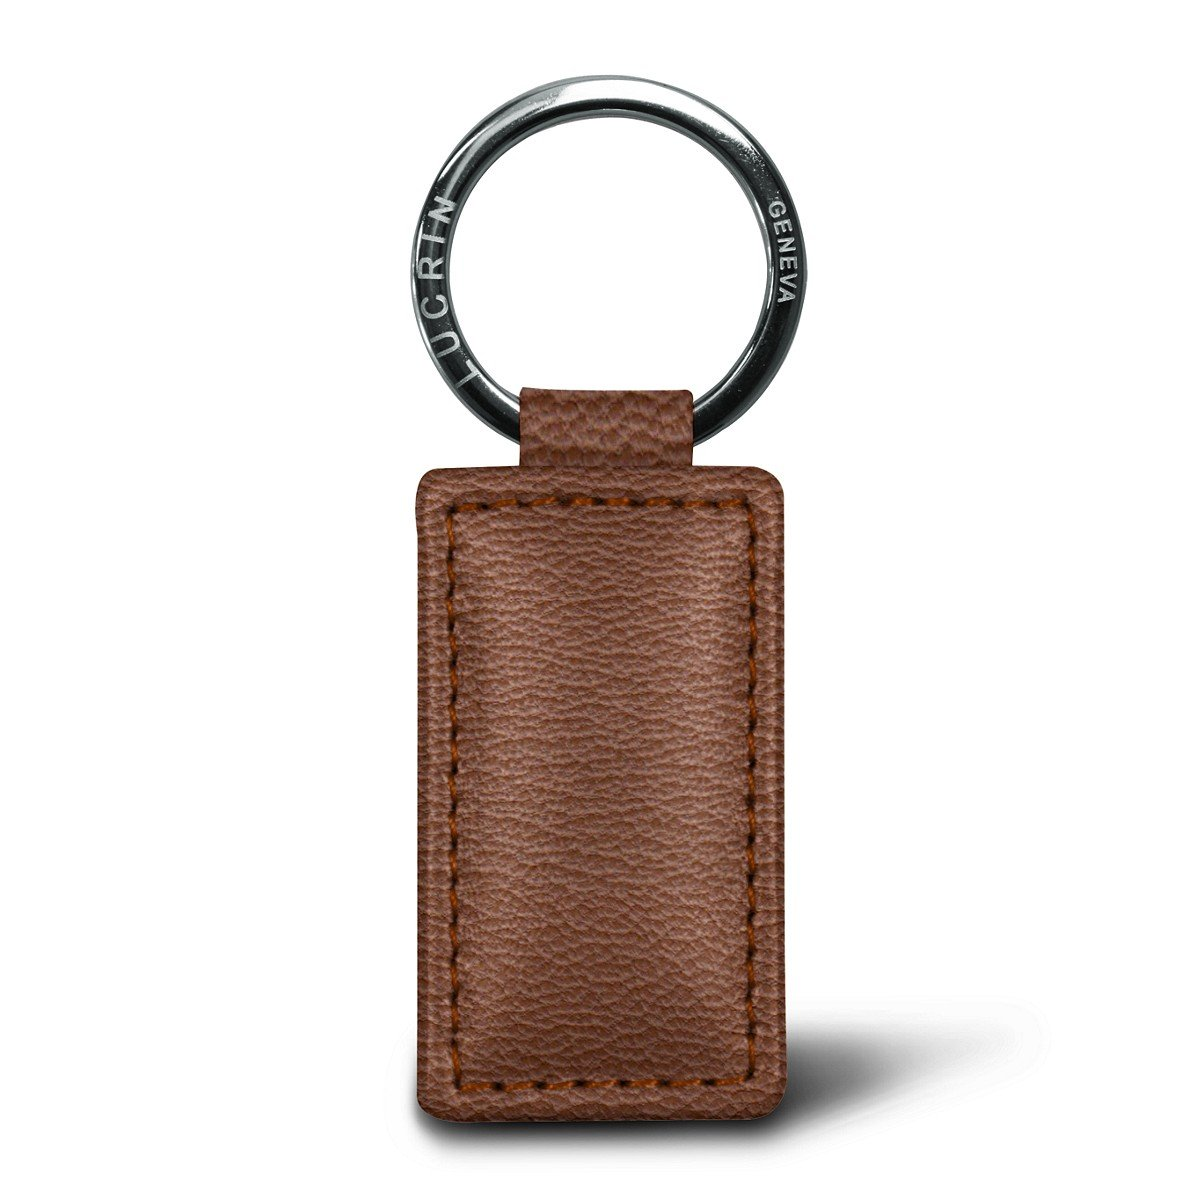 Lucrin - Rectangular Keyring - Black - Goat Leather Lucrin Leathergoods